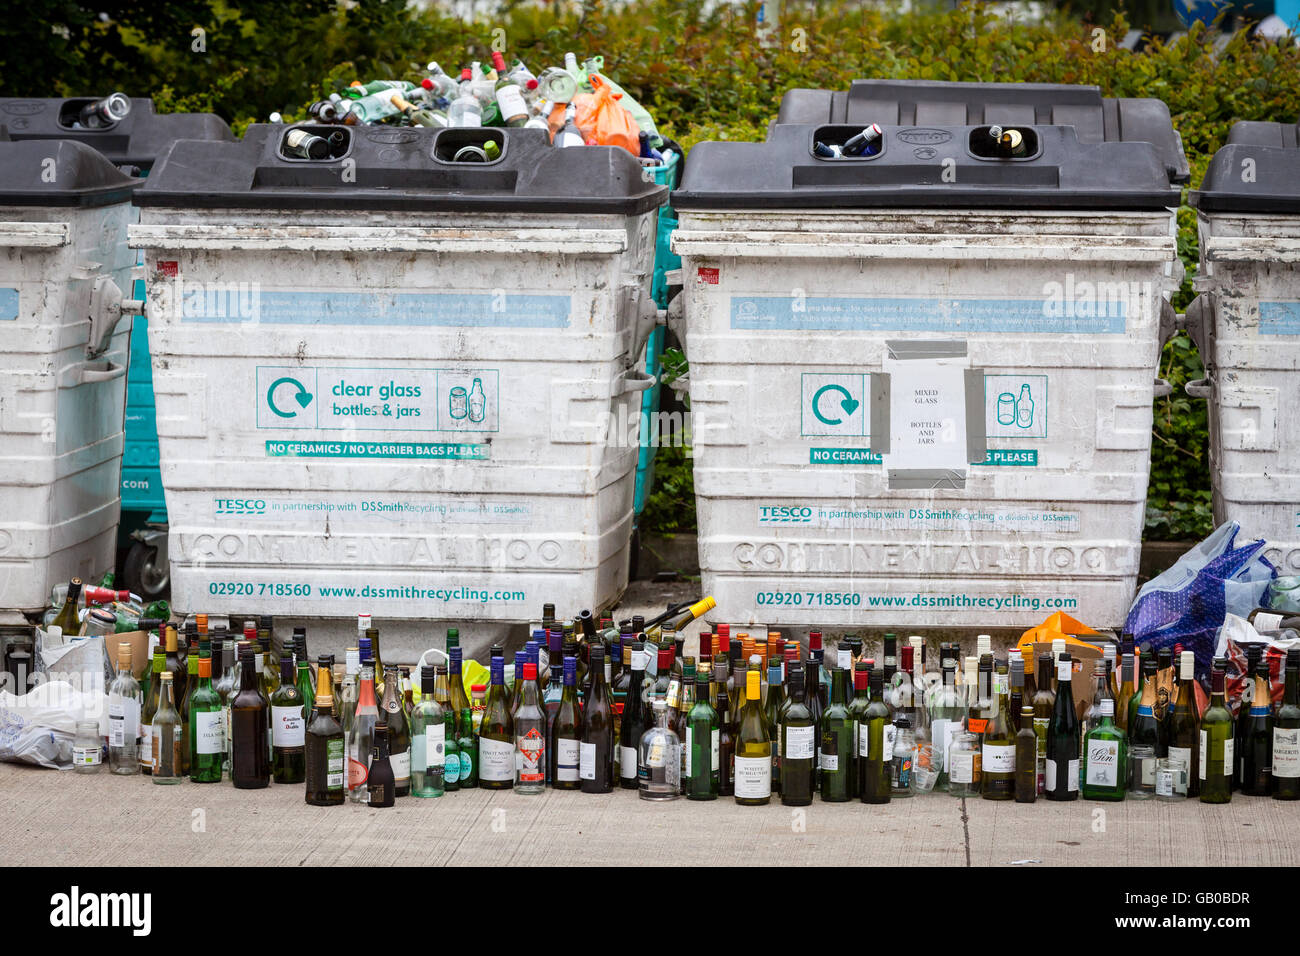 Overflowing recycling glass bottle bank in Winchester, UK with rows of wine bottles lined up in front - Stock Image